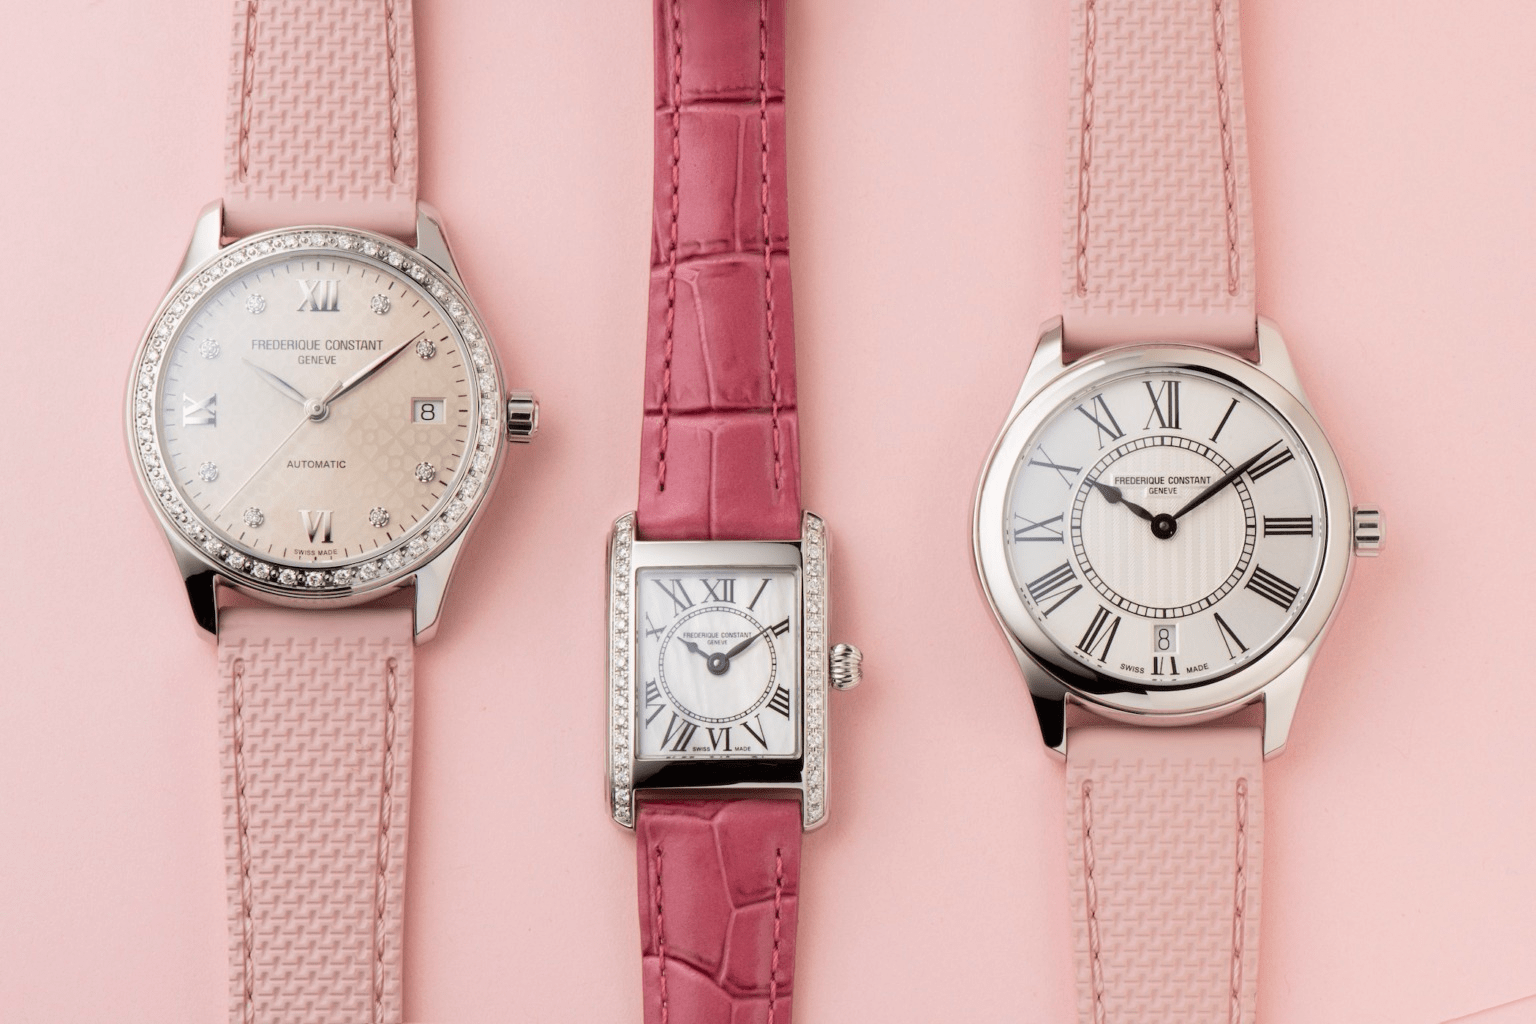 Frederique Constant Special Edition For Women pink ribbon